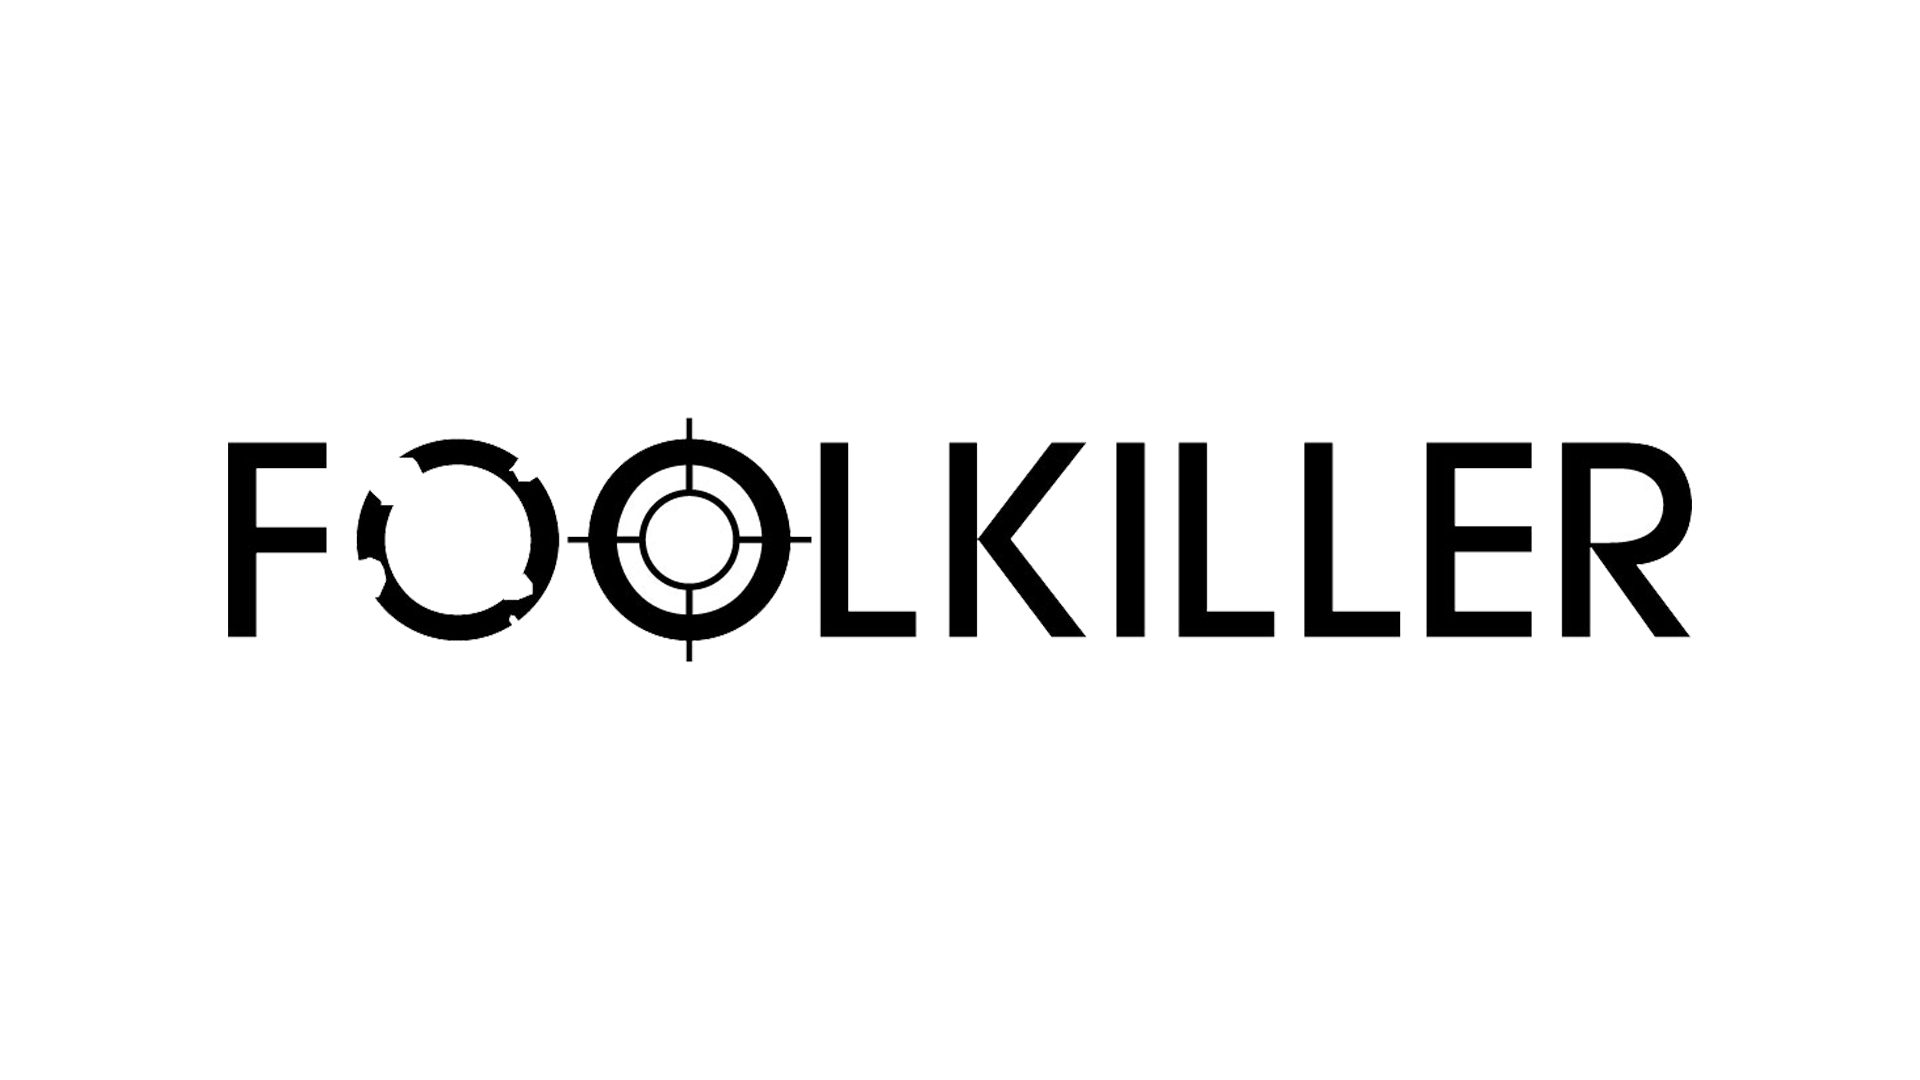 Foolkiller_3.png